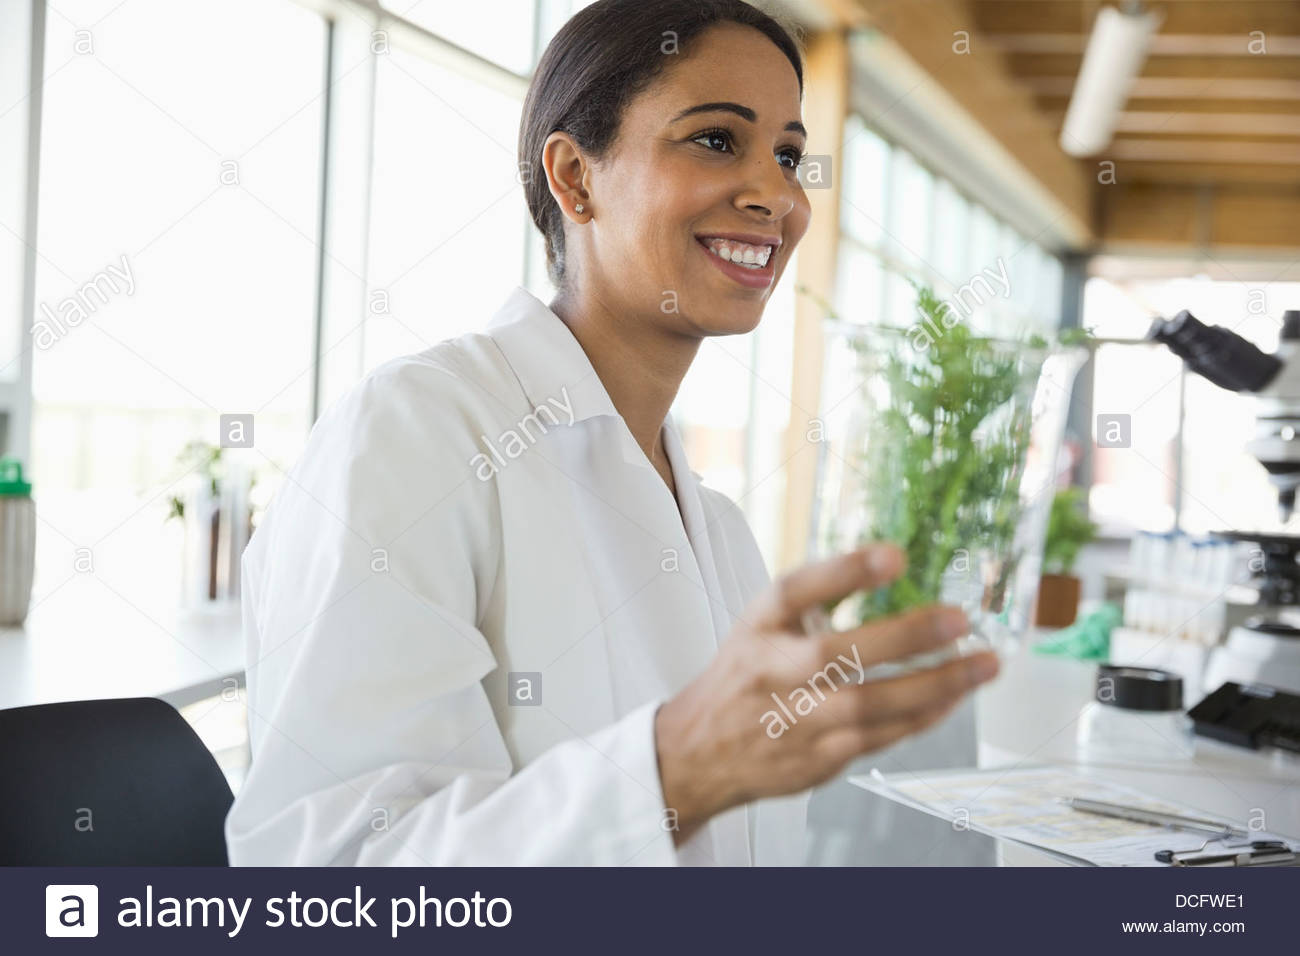 Botanist holding plant samples in laboratory - Stock Image